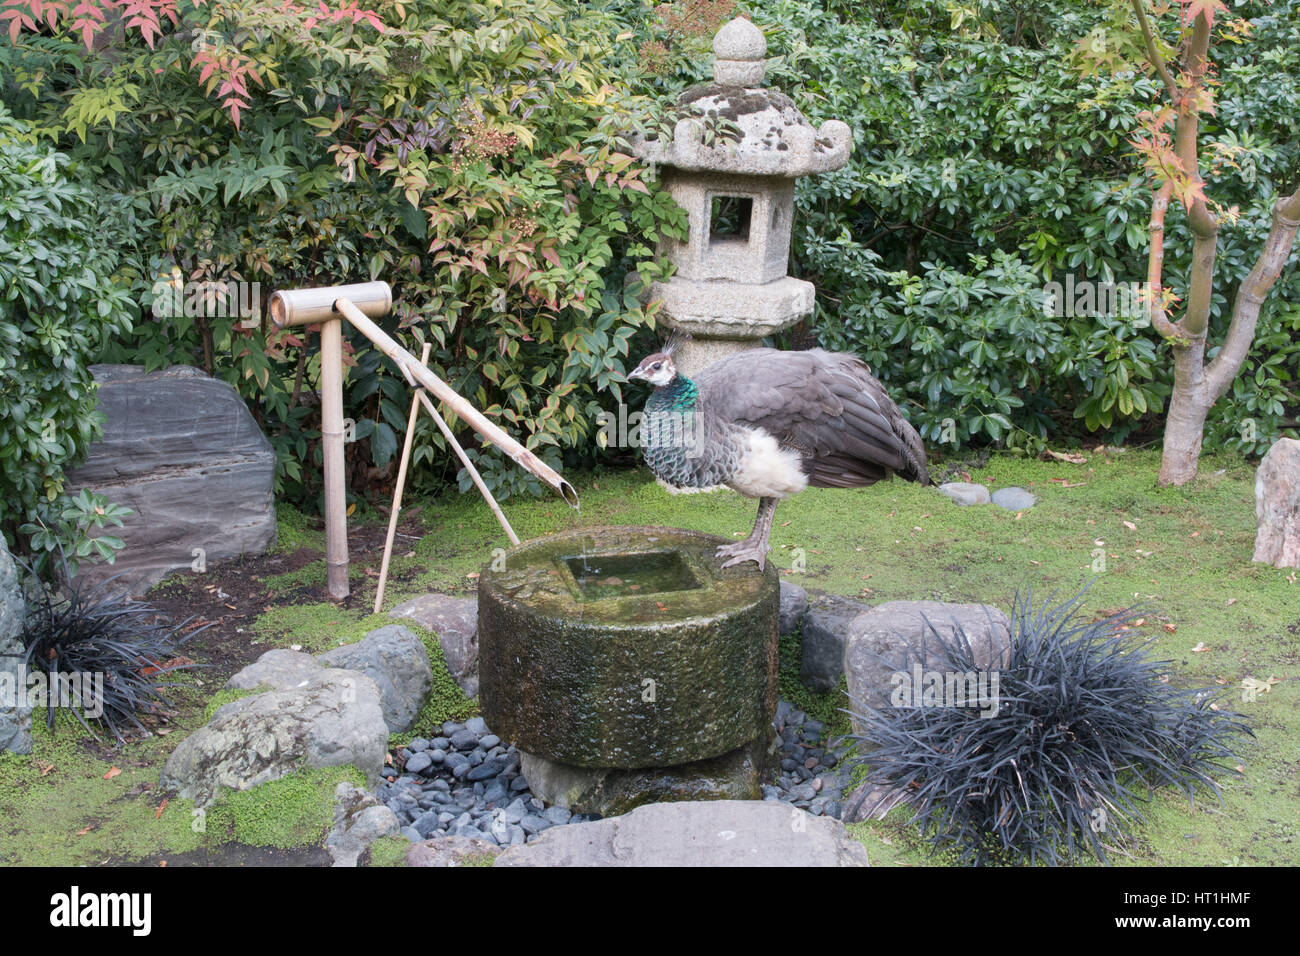 Peacock drinking water in the Japanese garden - Stock Image